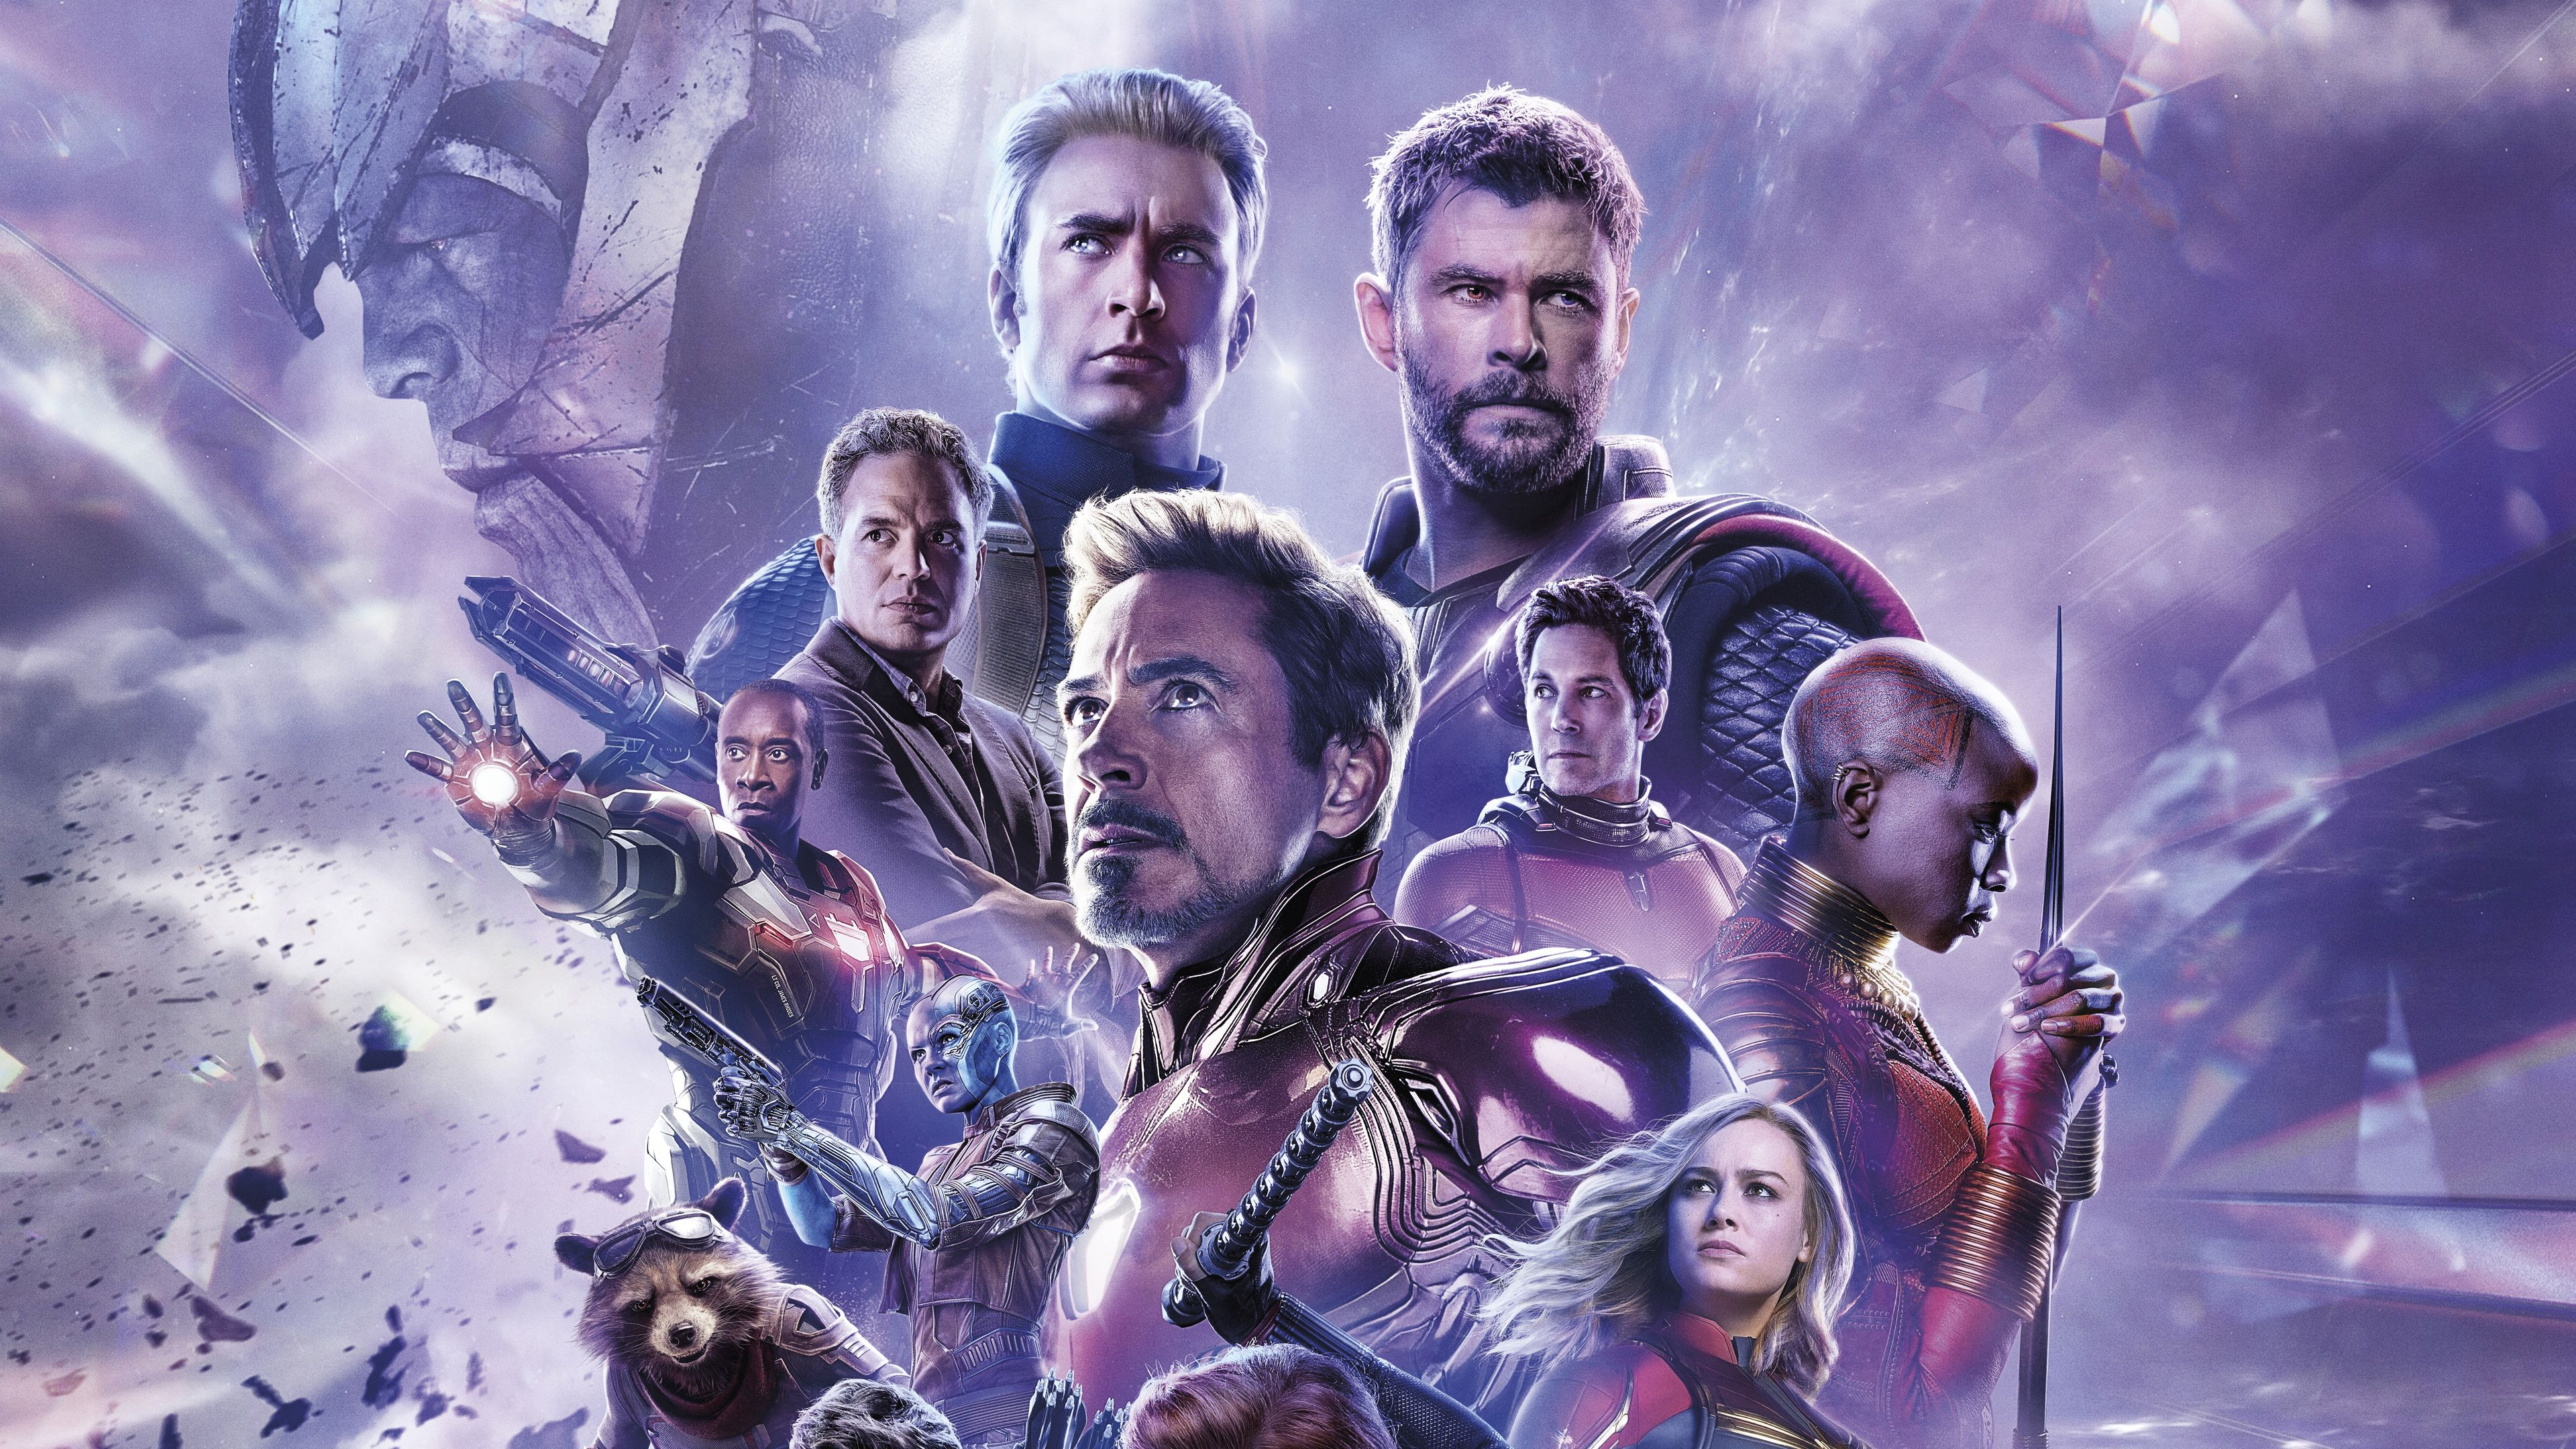 Avengers Endgame 4k Poster Wallpapers Movies Wallpapers Hd Wallpapers Avengers Endgame Wallpapers 4k Wallpapers 2019 Movi Movie Wallpapers Avengers Marvel